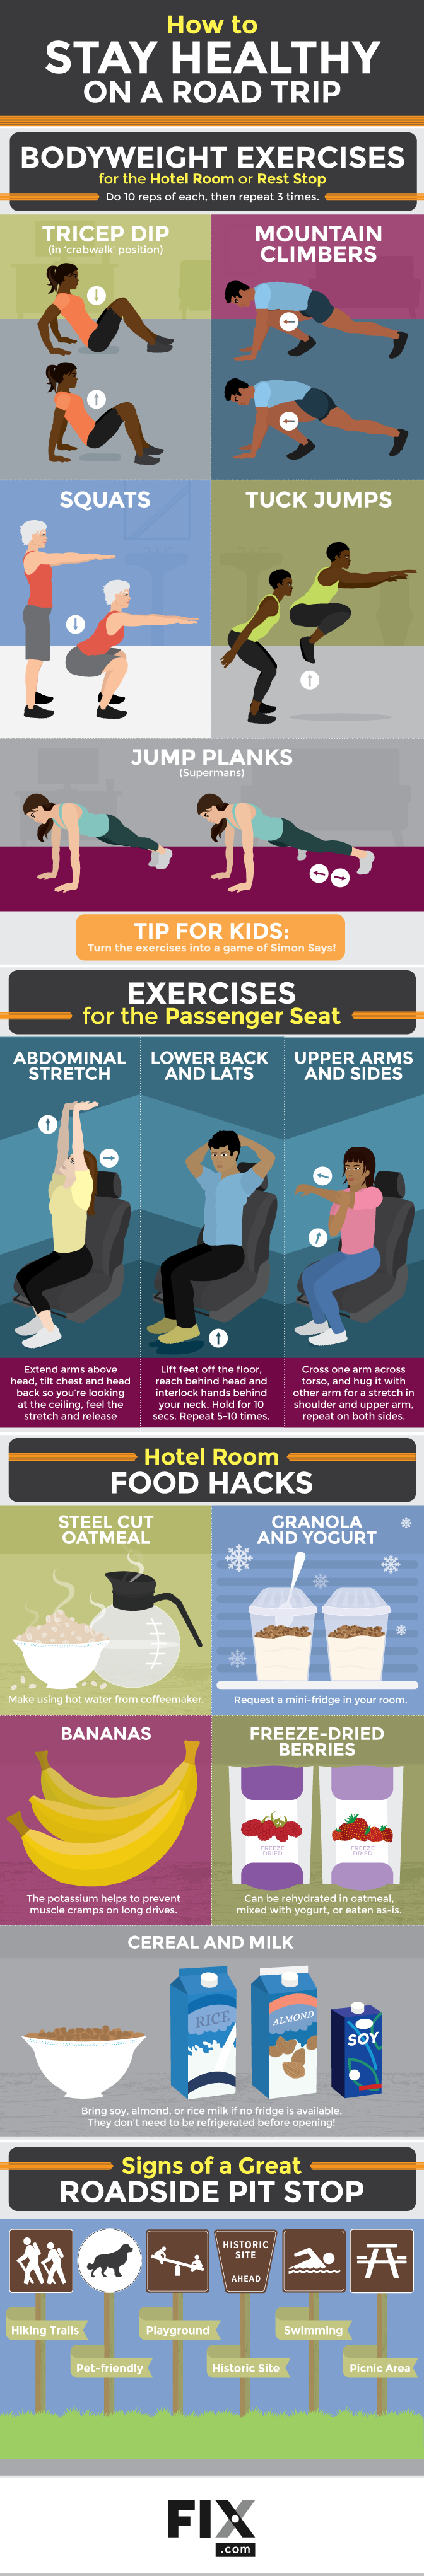 How to Stay Healthy on a Road Trip